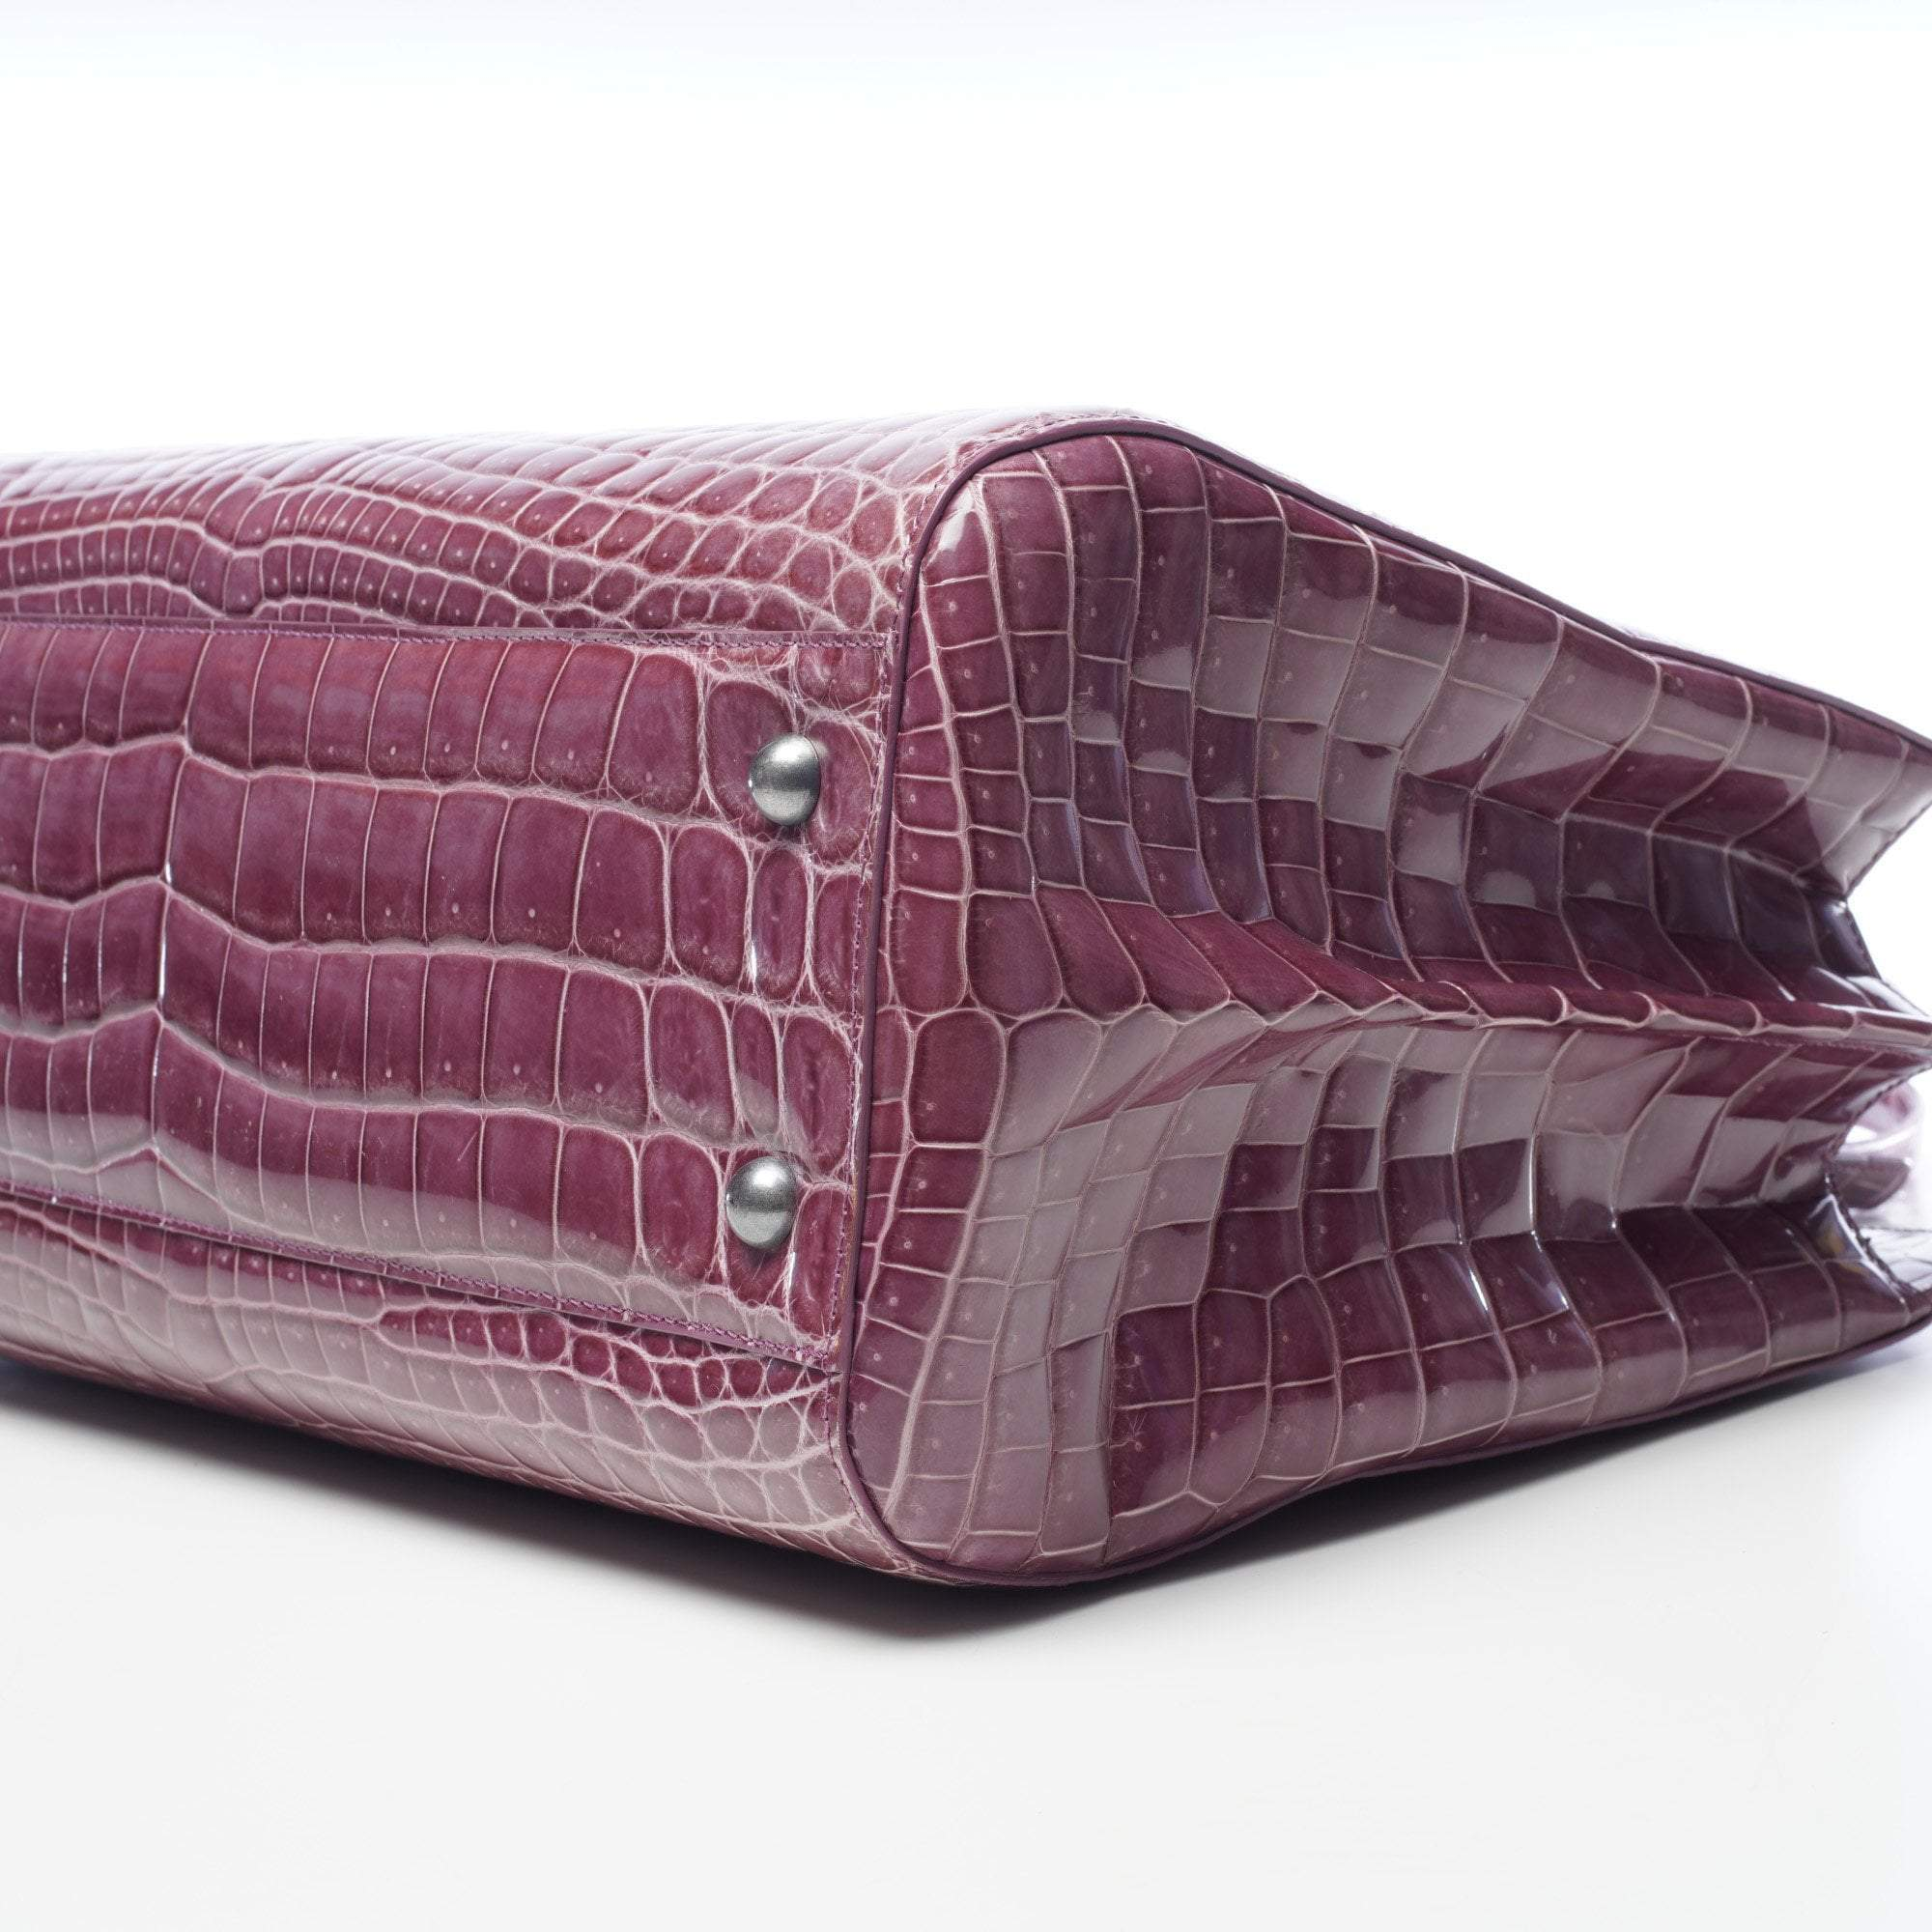 Bottega Veneta Purple Alligator Handbag